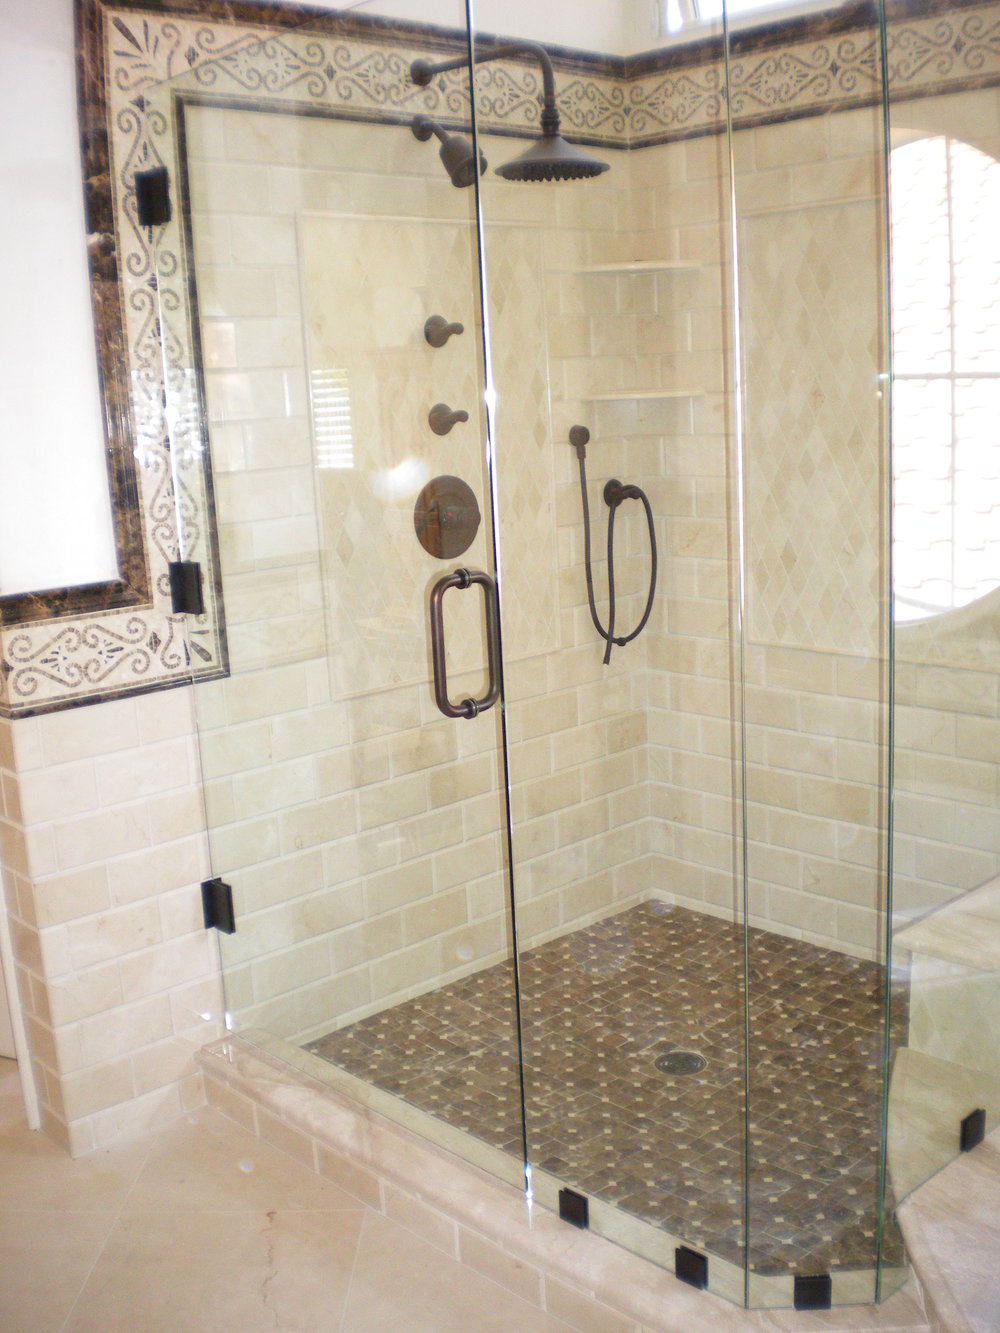 Shower-Doors-Residential-Photos-31.jpg